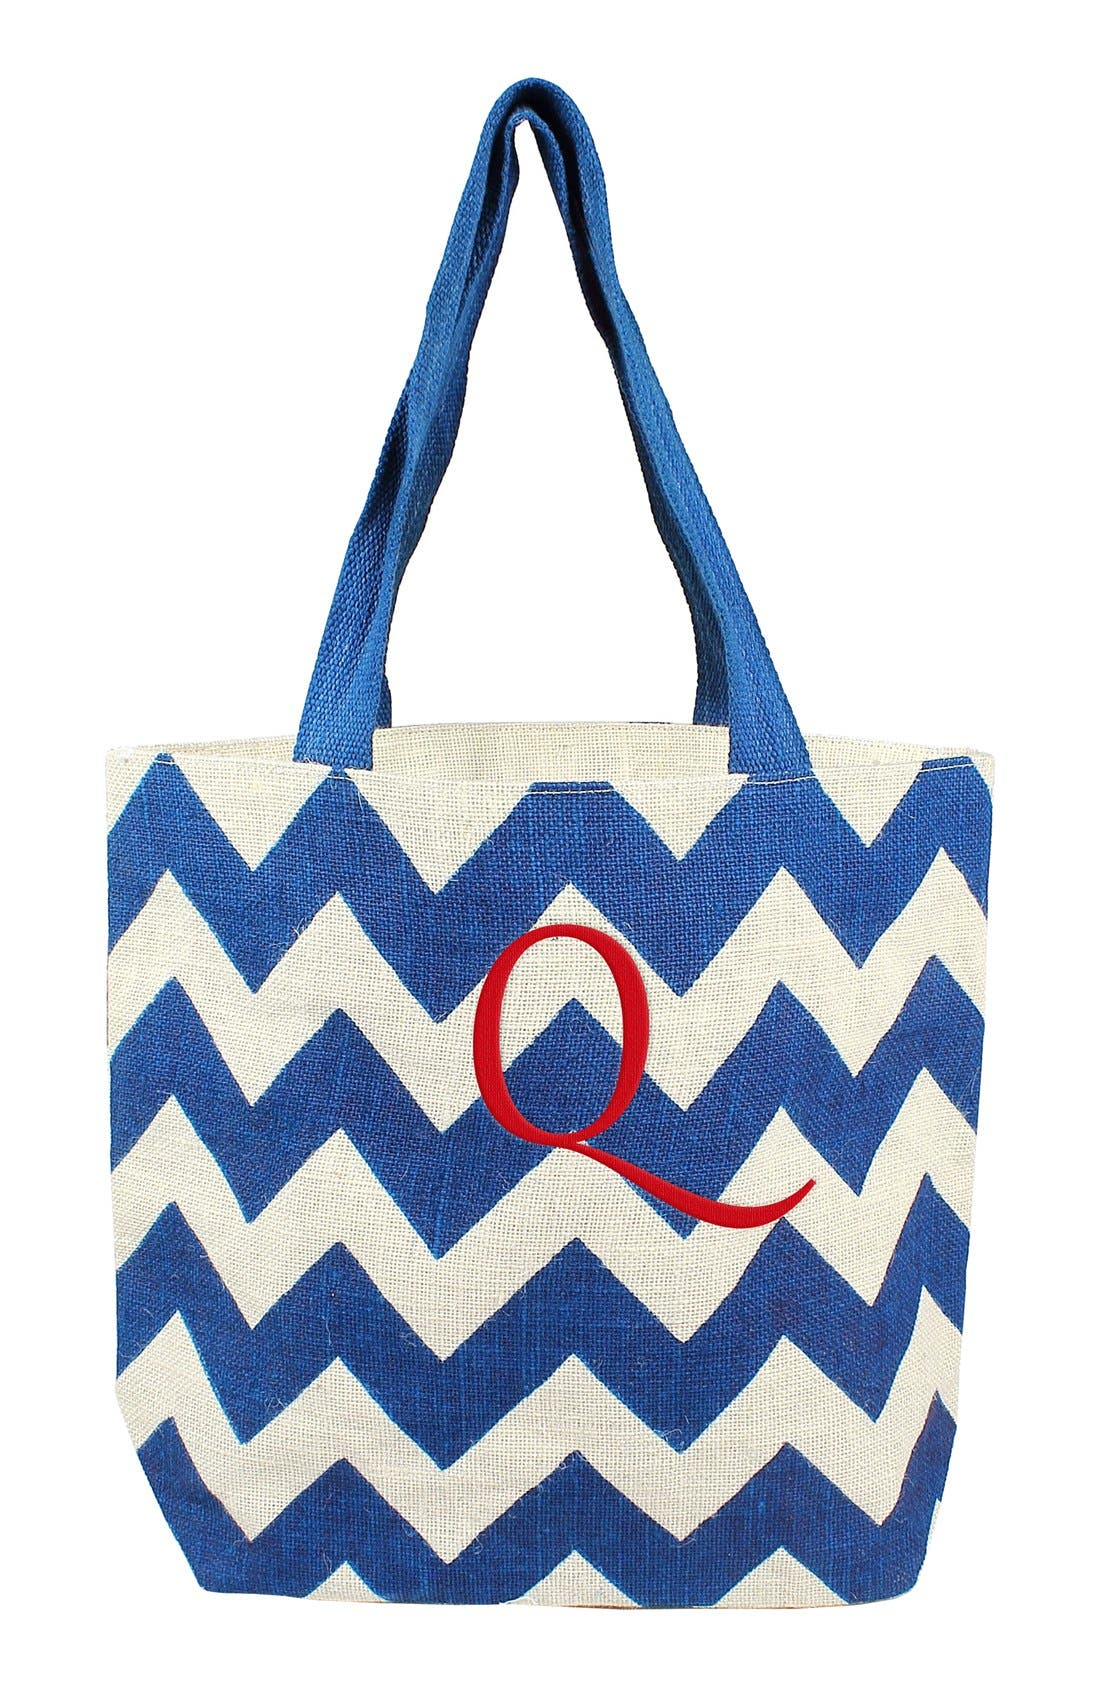 Monogram Chevron Print Jute Tote,                             Main thumbnail 1, color,                             Blue/ Parchment - Q